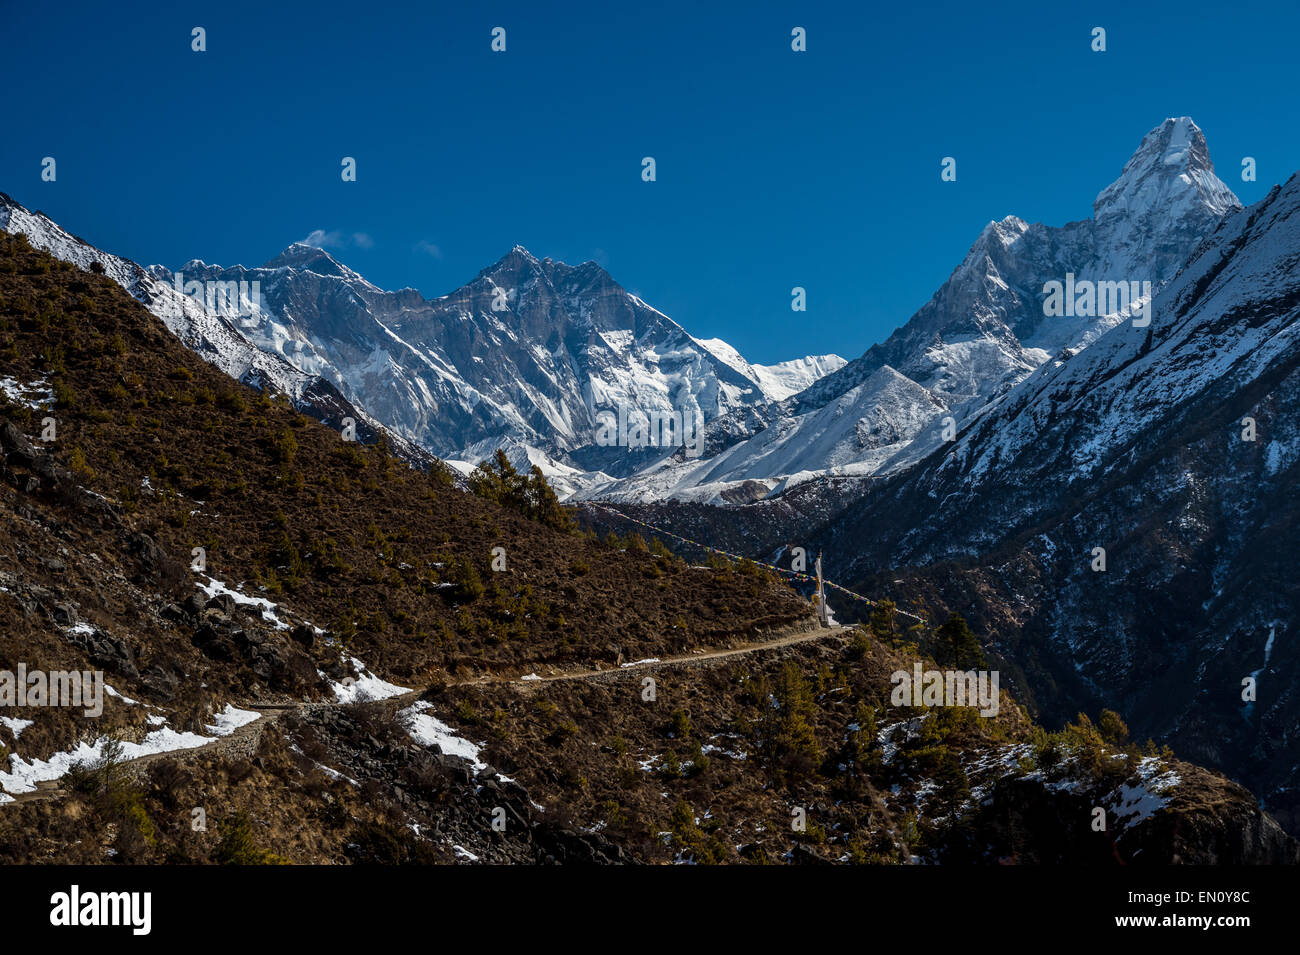 View of Everest, Lhotse, Nuptse, Ama Dablam peaks in the Everest Region - Stock Image